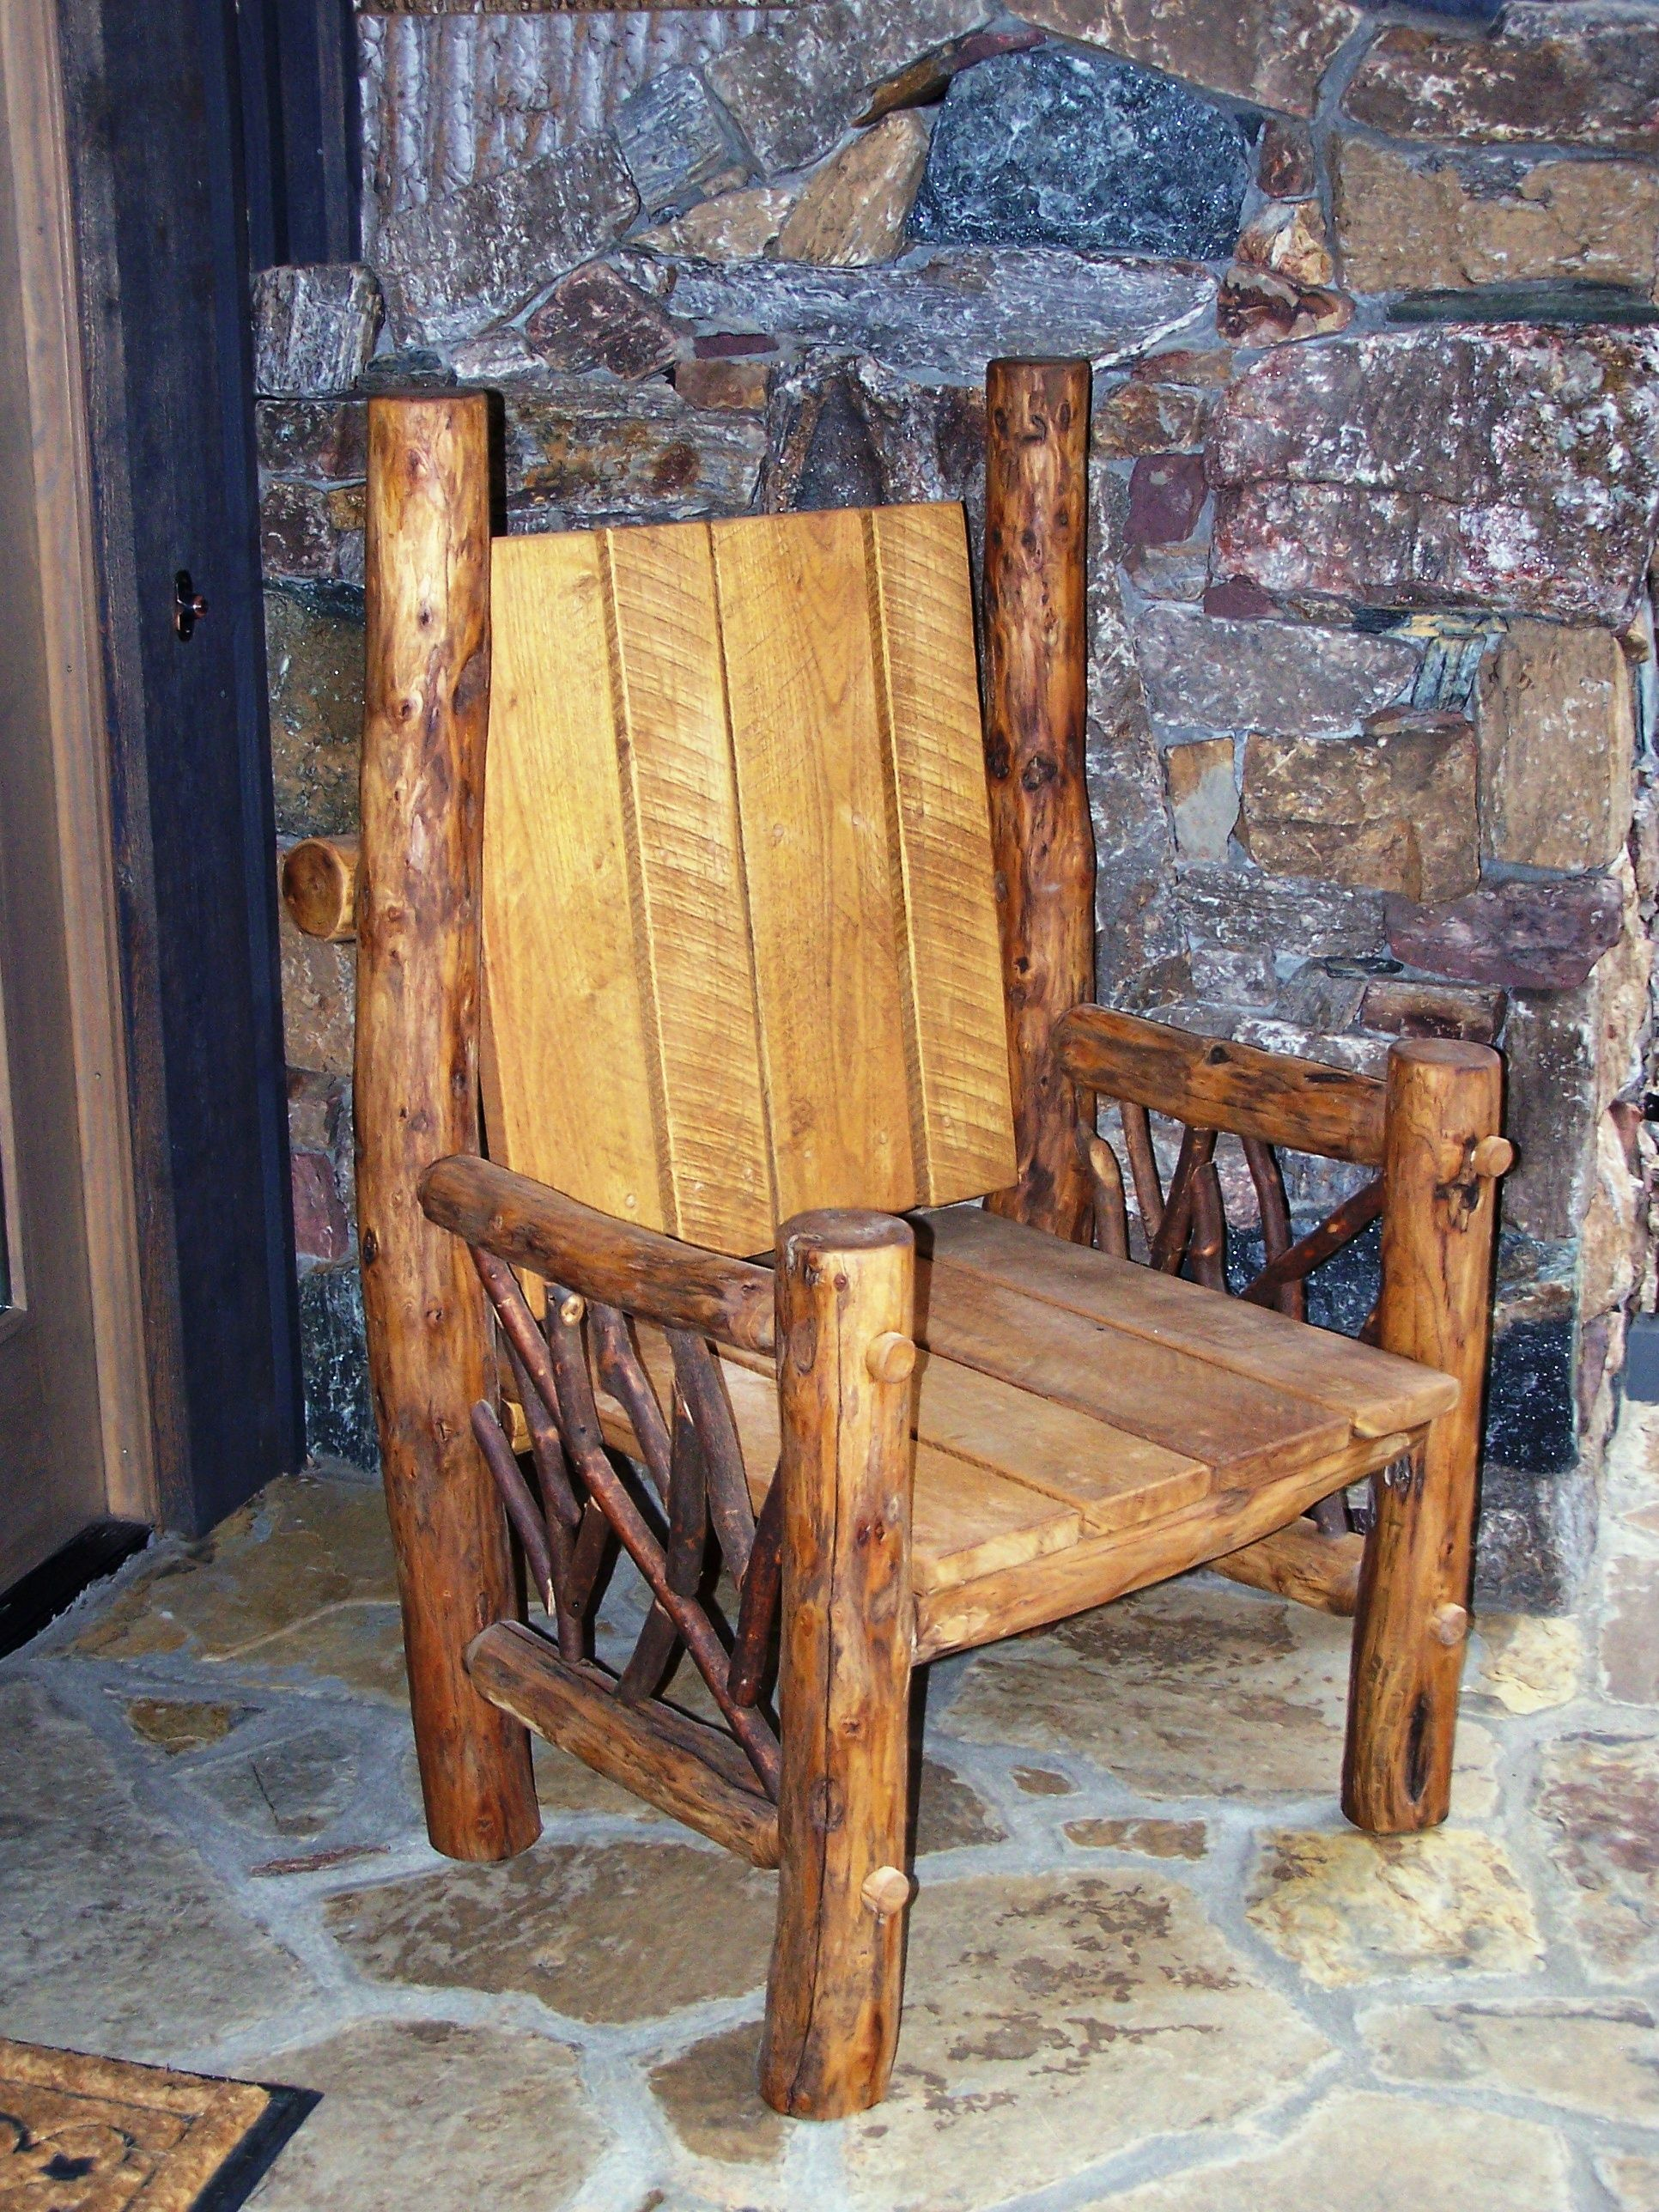 Rustic Wood Chairs Rustic Chair Love It Porches Patios And Landscaping